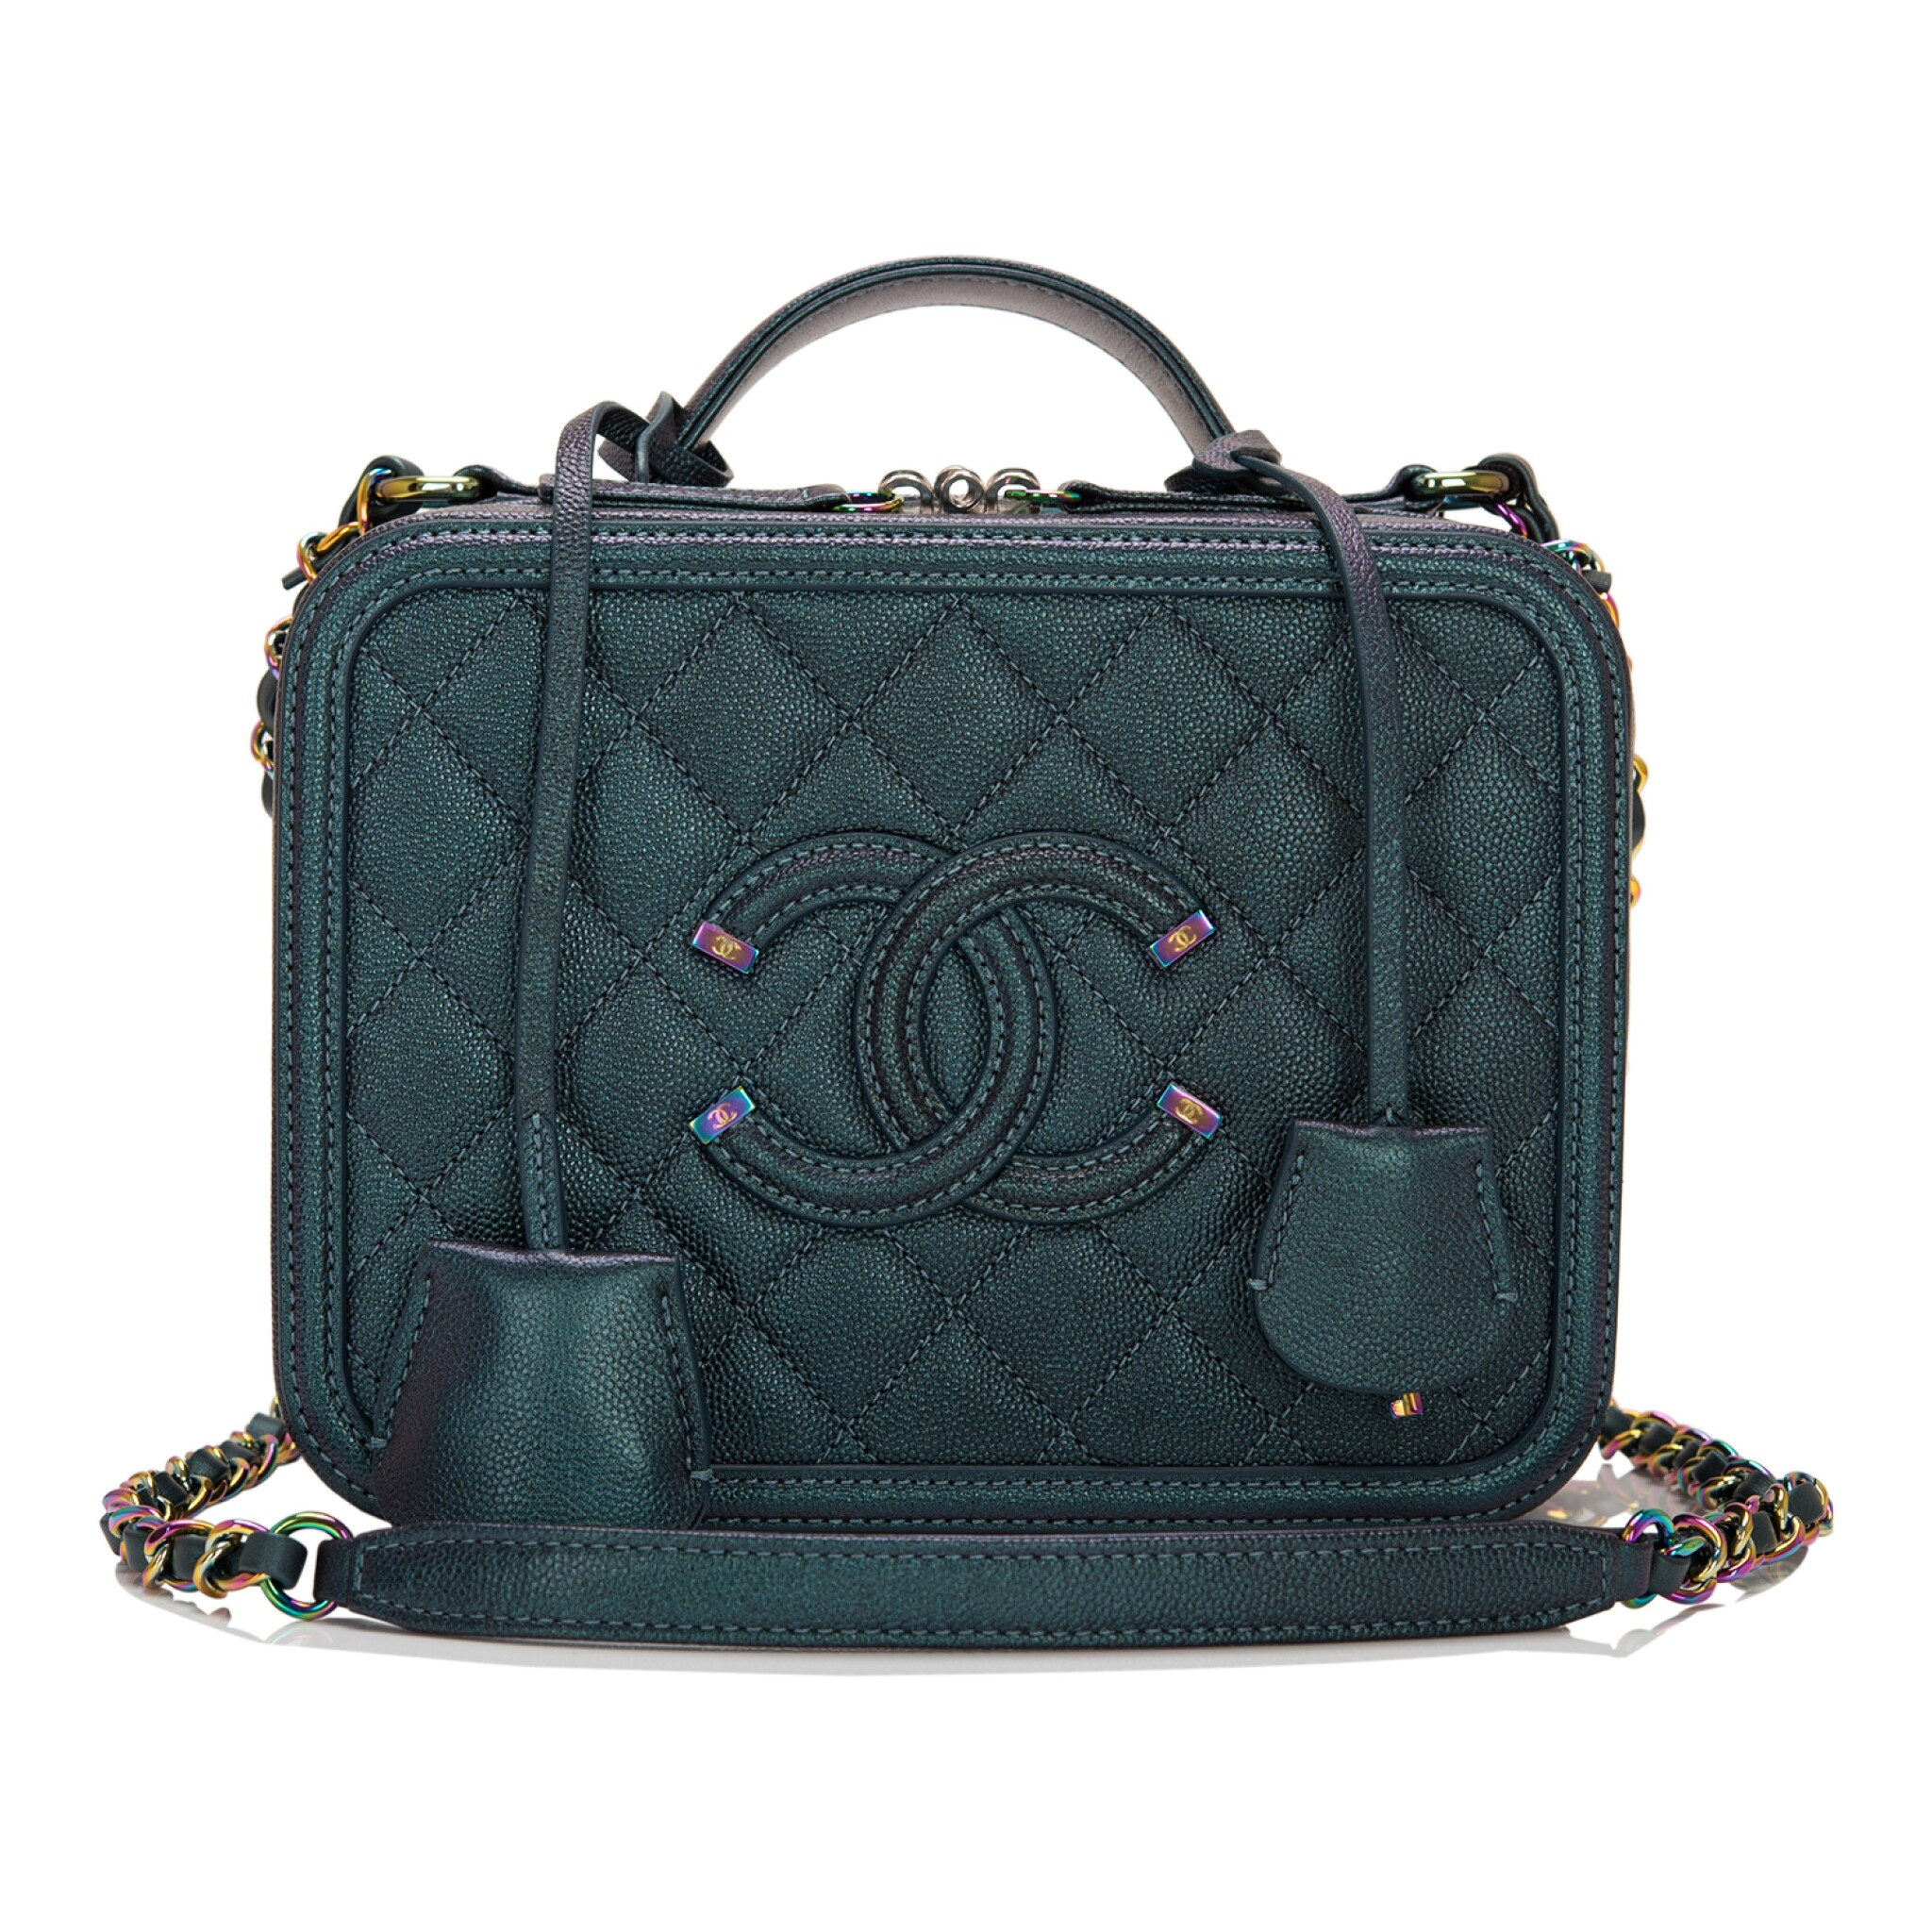 View full screen - View 1 of Lot 119. Chanel Dark Turquoise Medium Filigree Vanity Case of Grained Metallic Lambskin Leather with Iridescent Hardware.